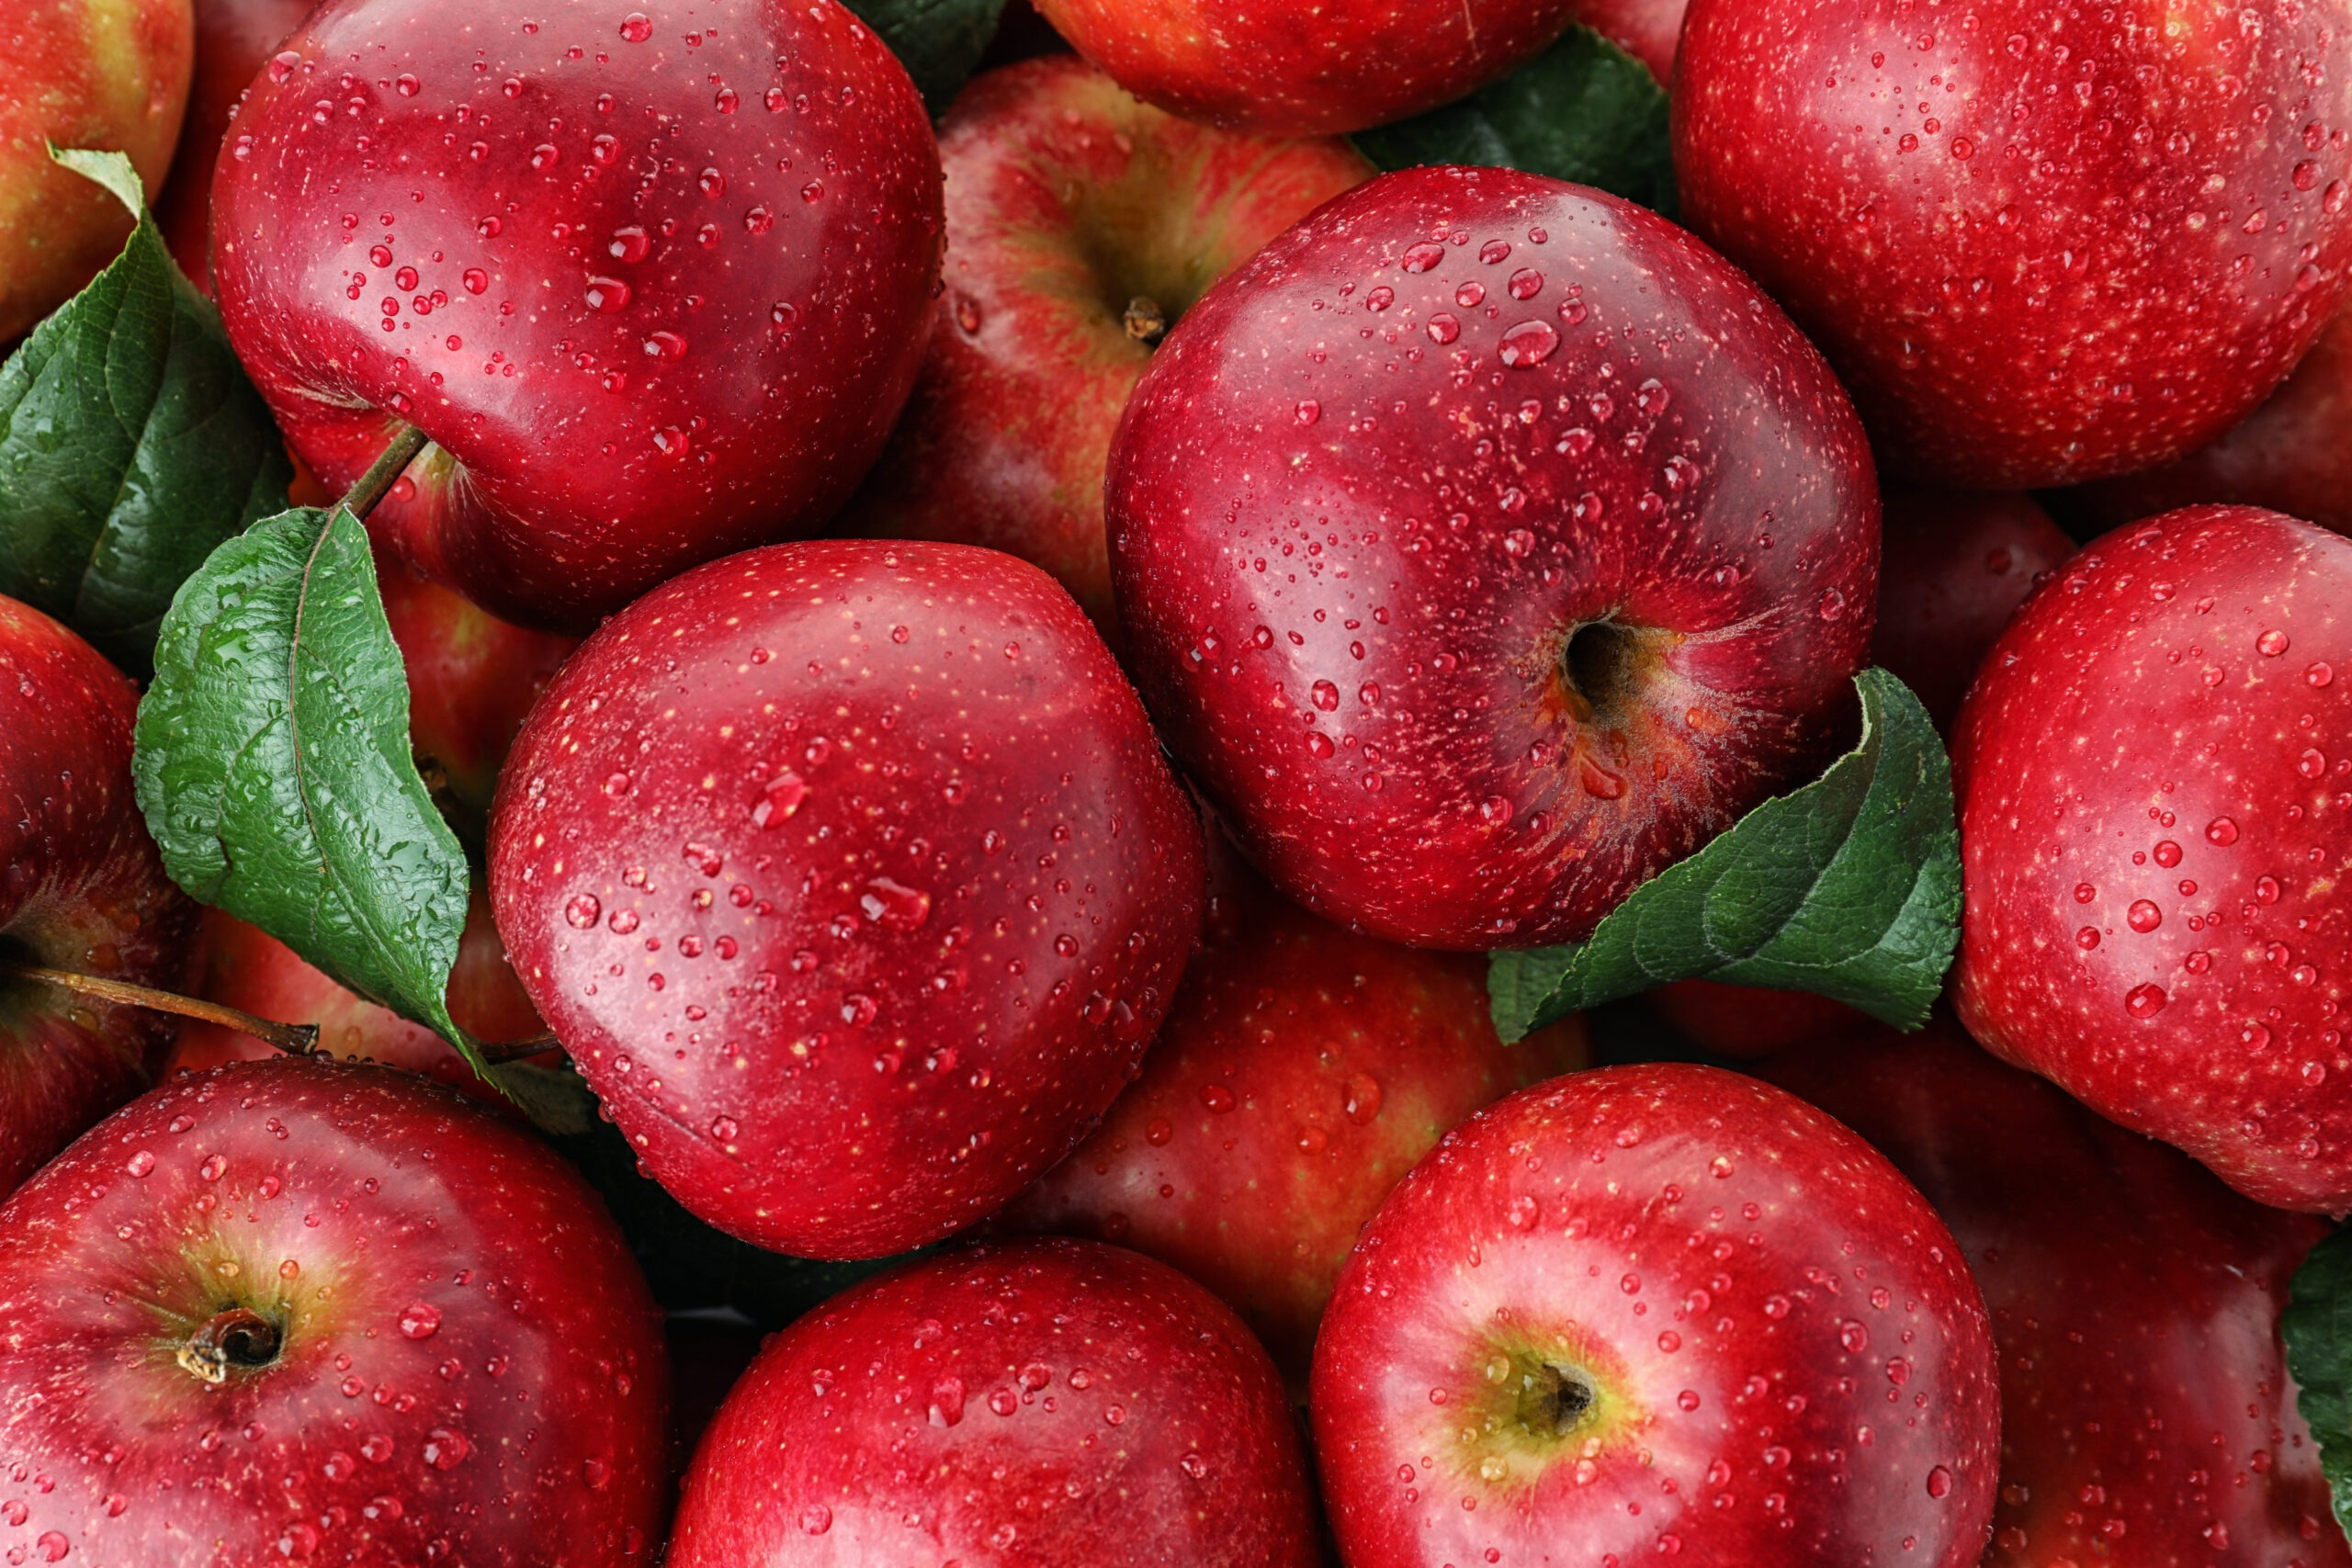 Many ripe juicy red apples covered with water drops as background